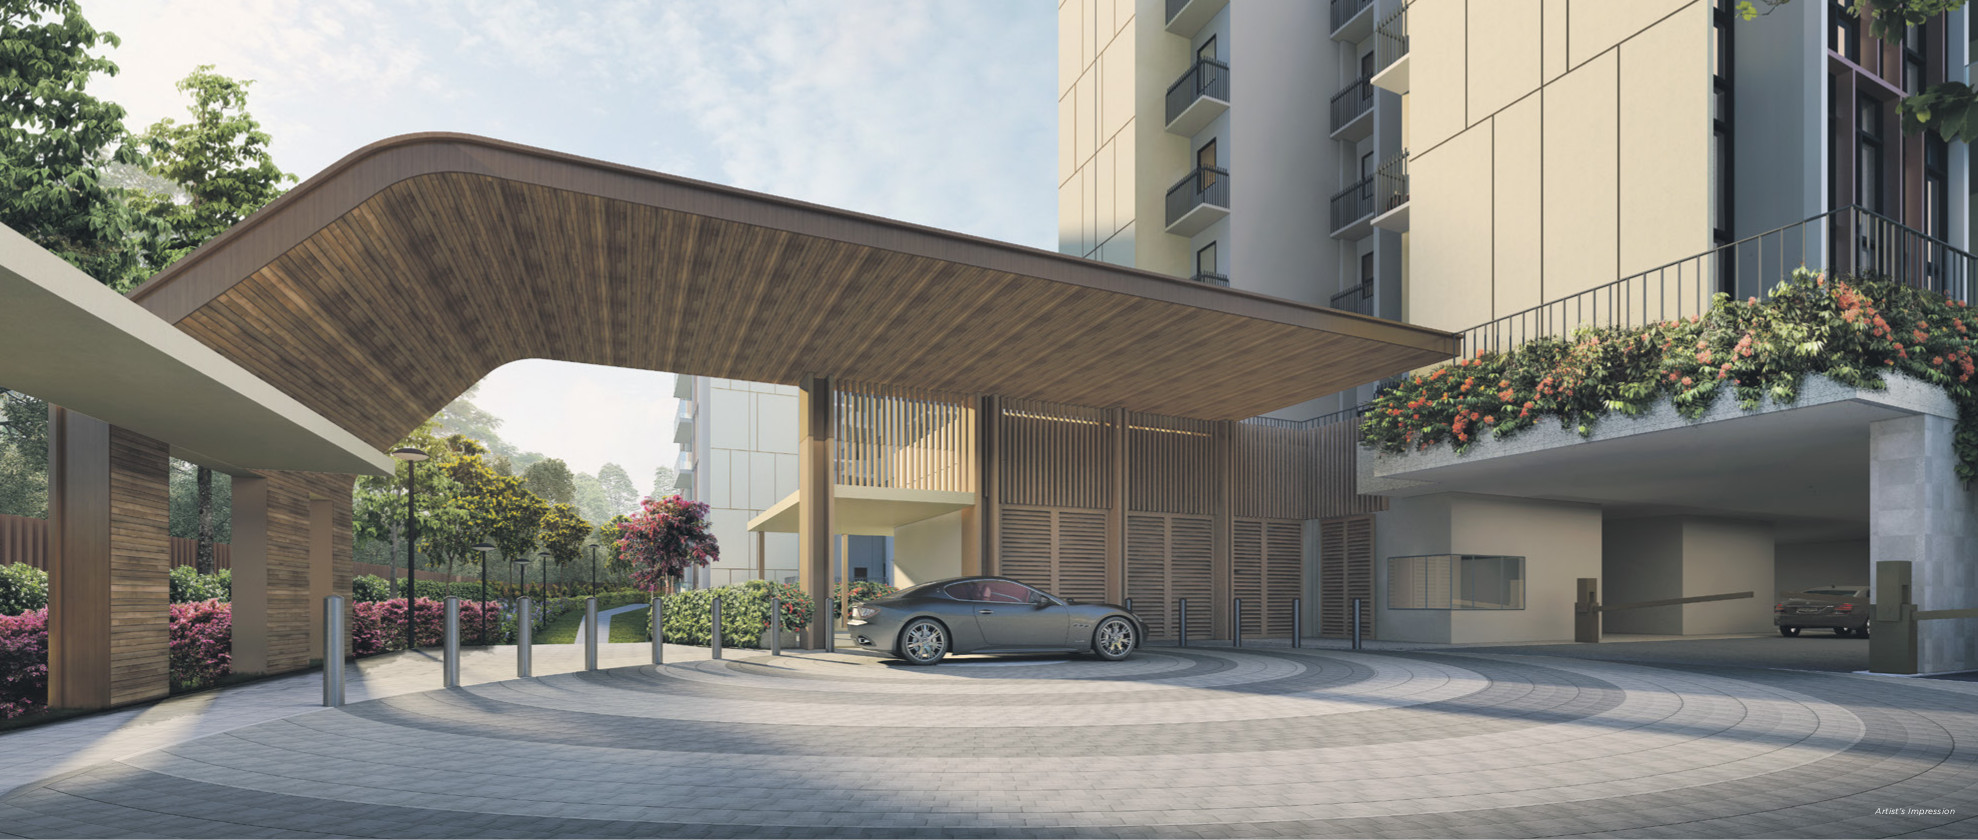 Artist's Impression . The Gazania Condo Entrance Drop Off